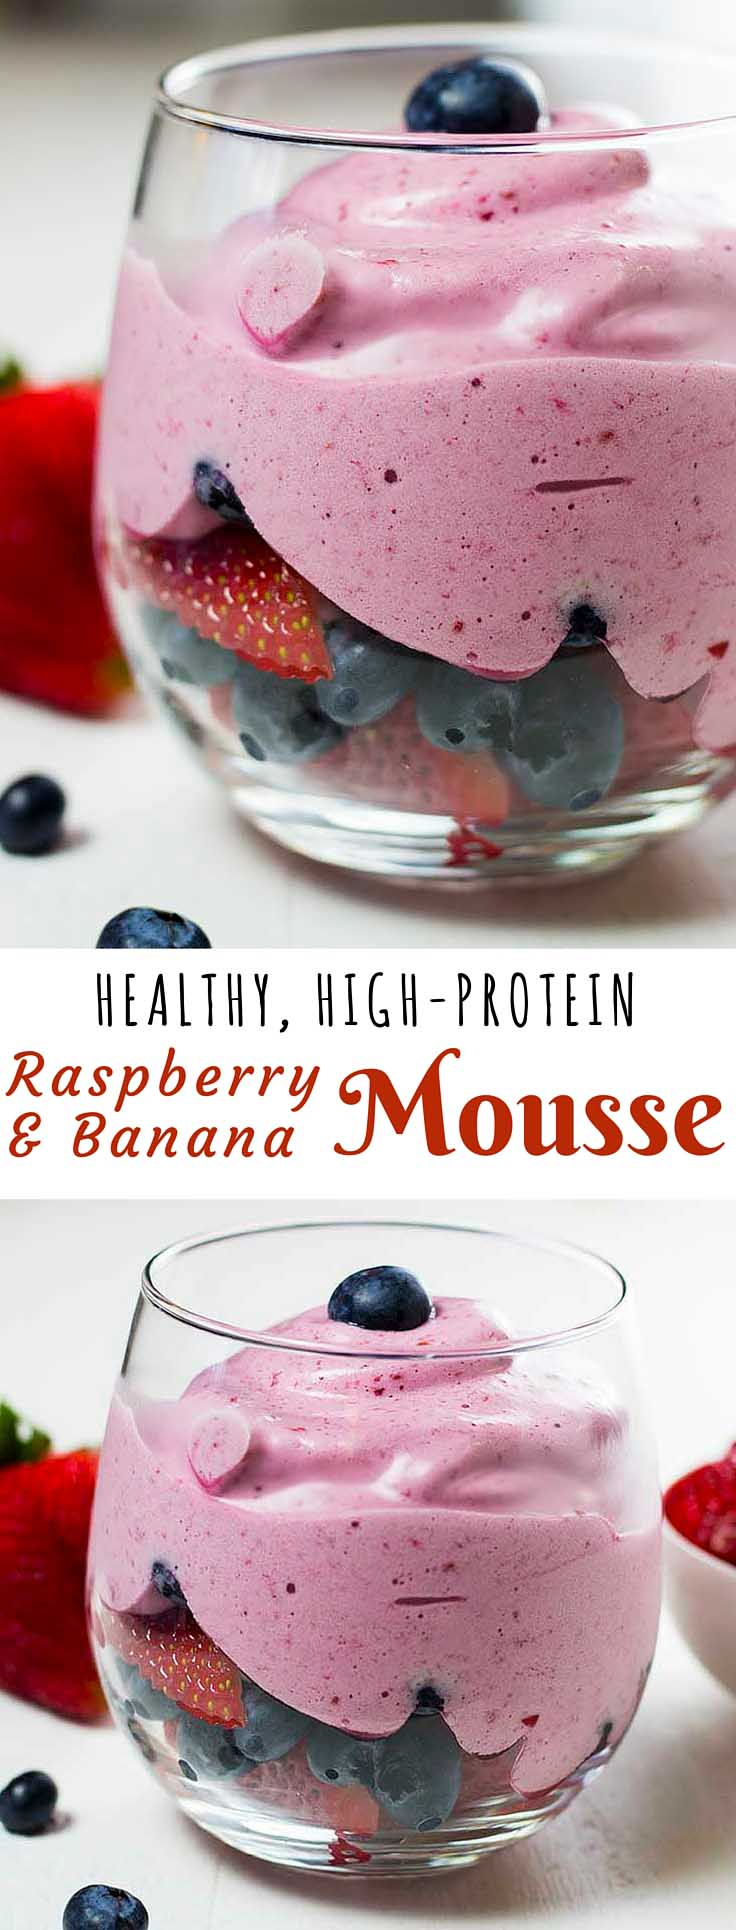 High-Protein Raspberry & Banana Mousse is the perfect high protein snack, and has a thick silky consistency (like thick whipped cream) without any of the unhealthy ingredients you usually find in anything as good as this.